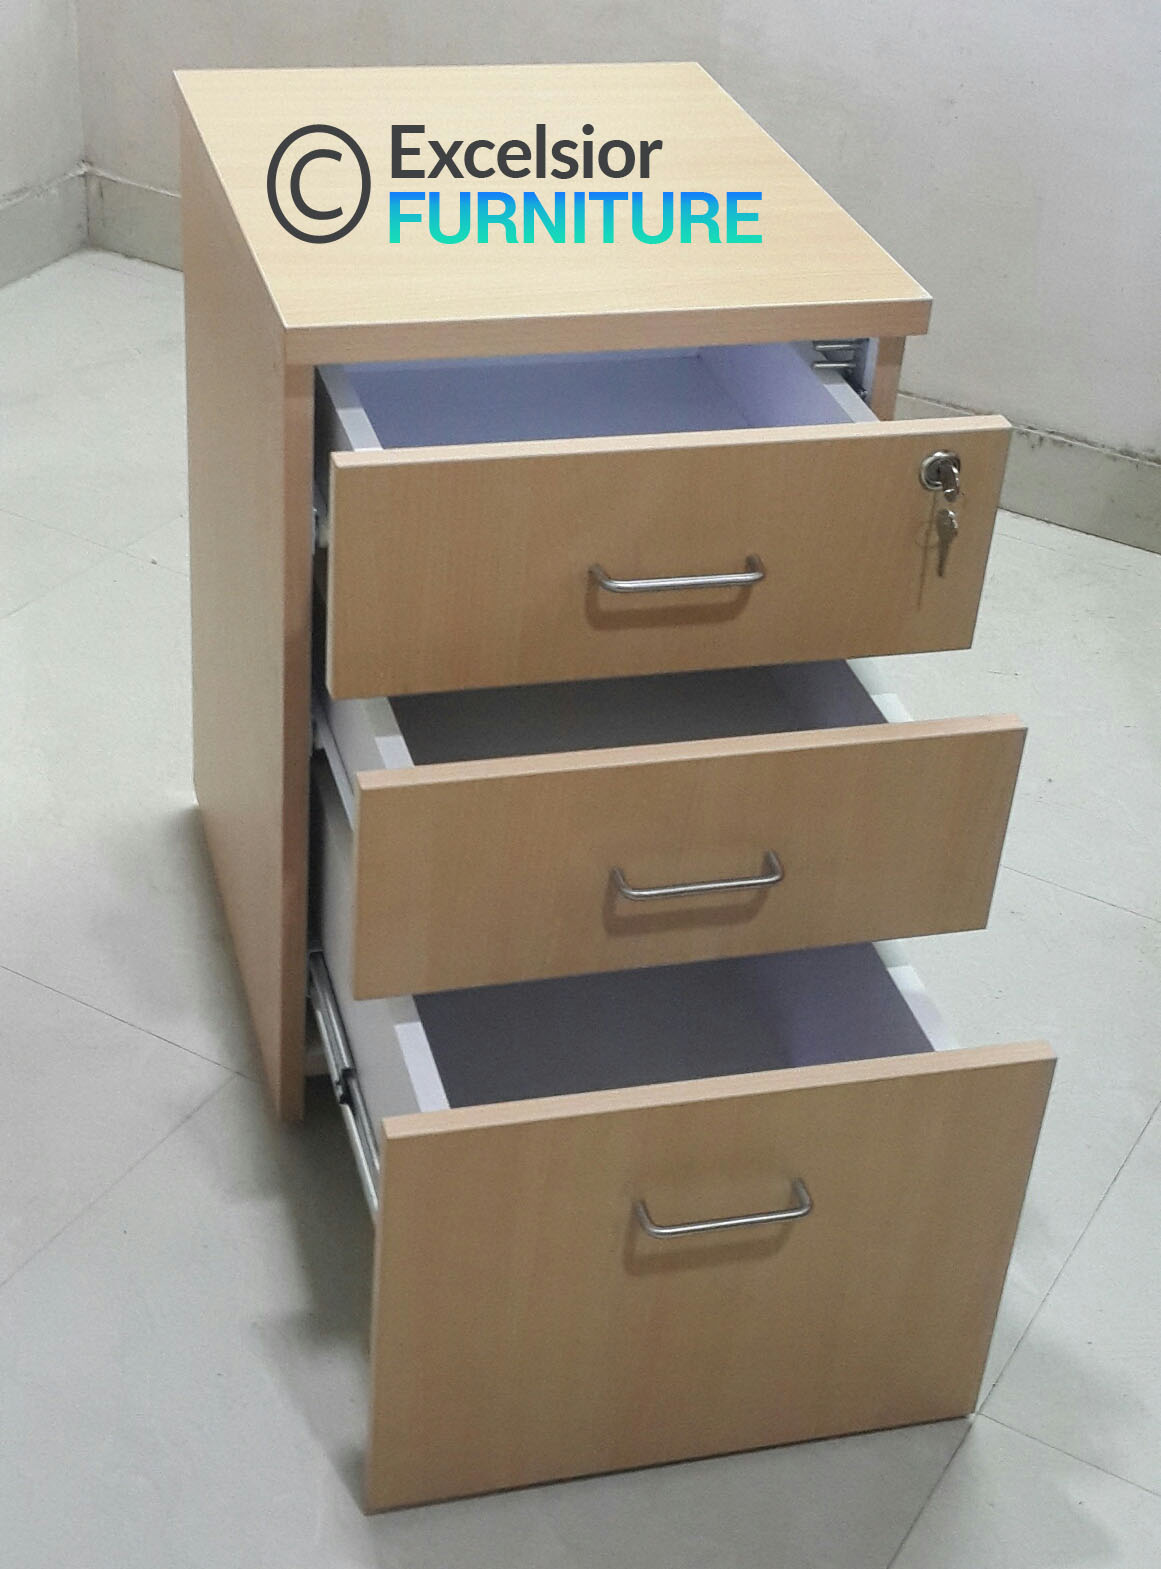 Bon Office Storage Excelsior Furniture U2013 7